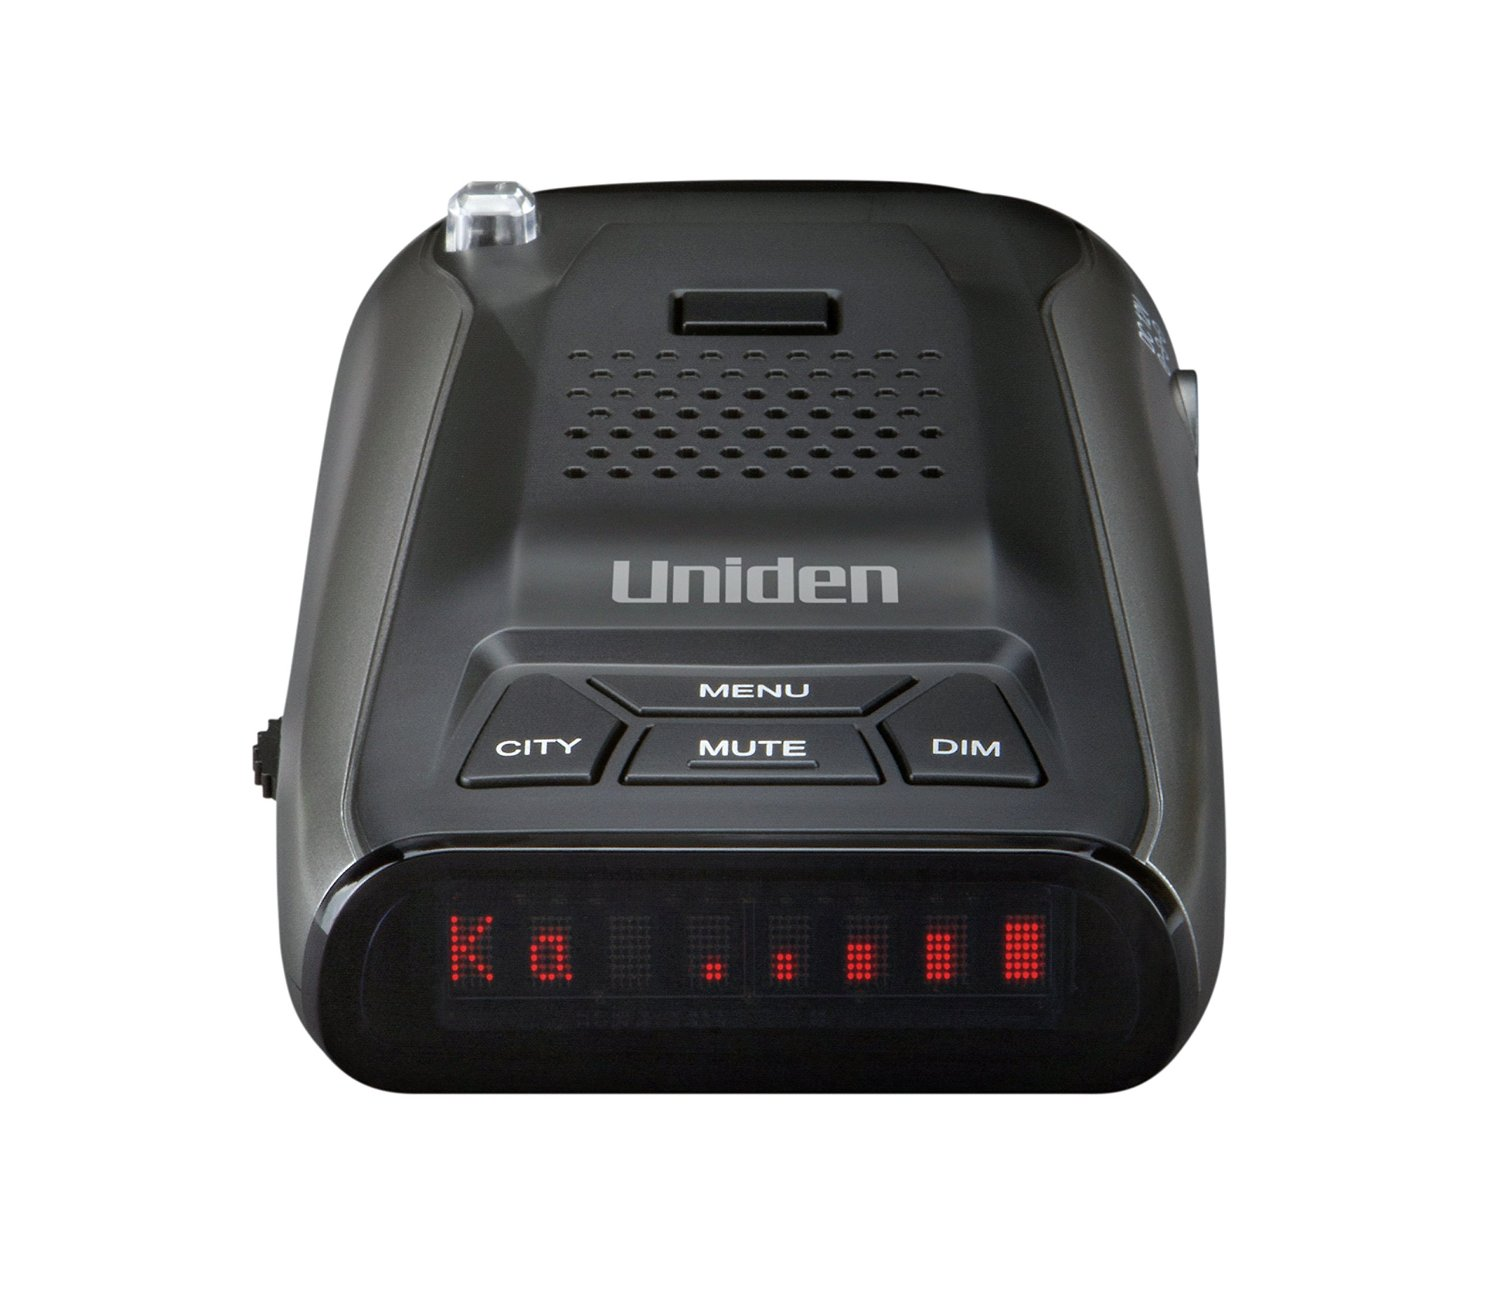 Uniden LRD750 Laser Radar Detector with Voice Alert